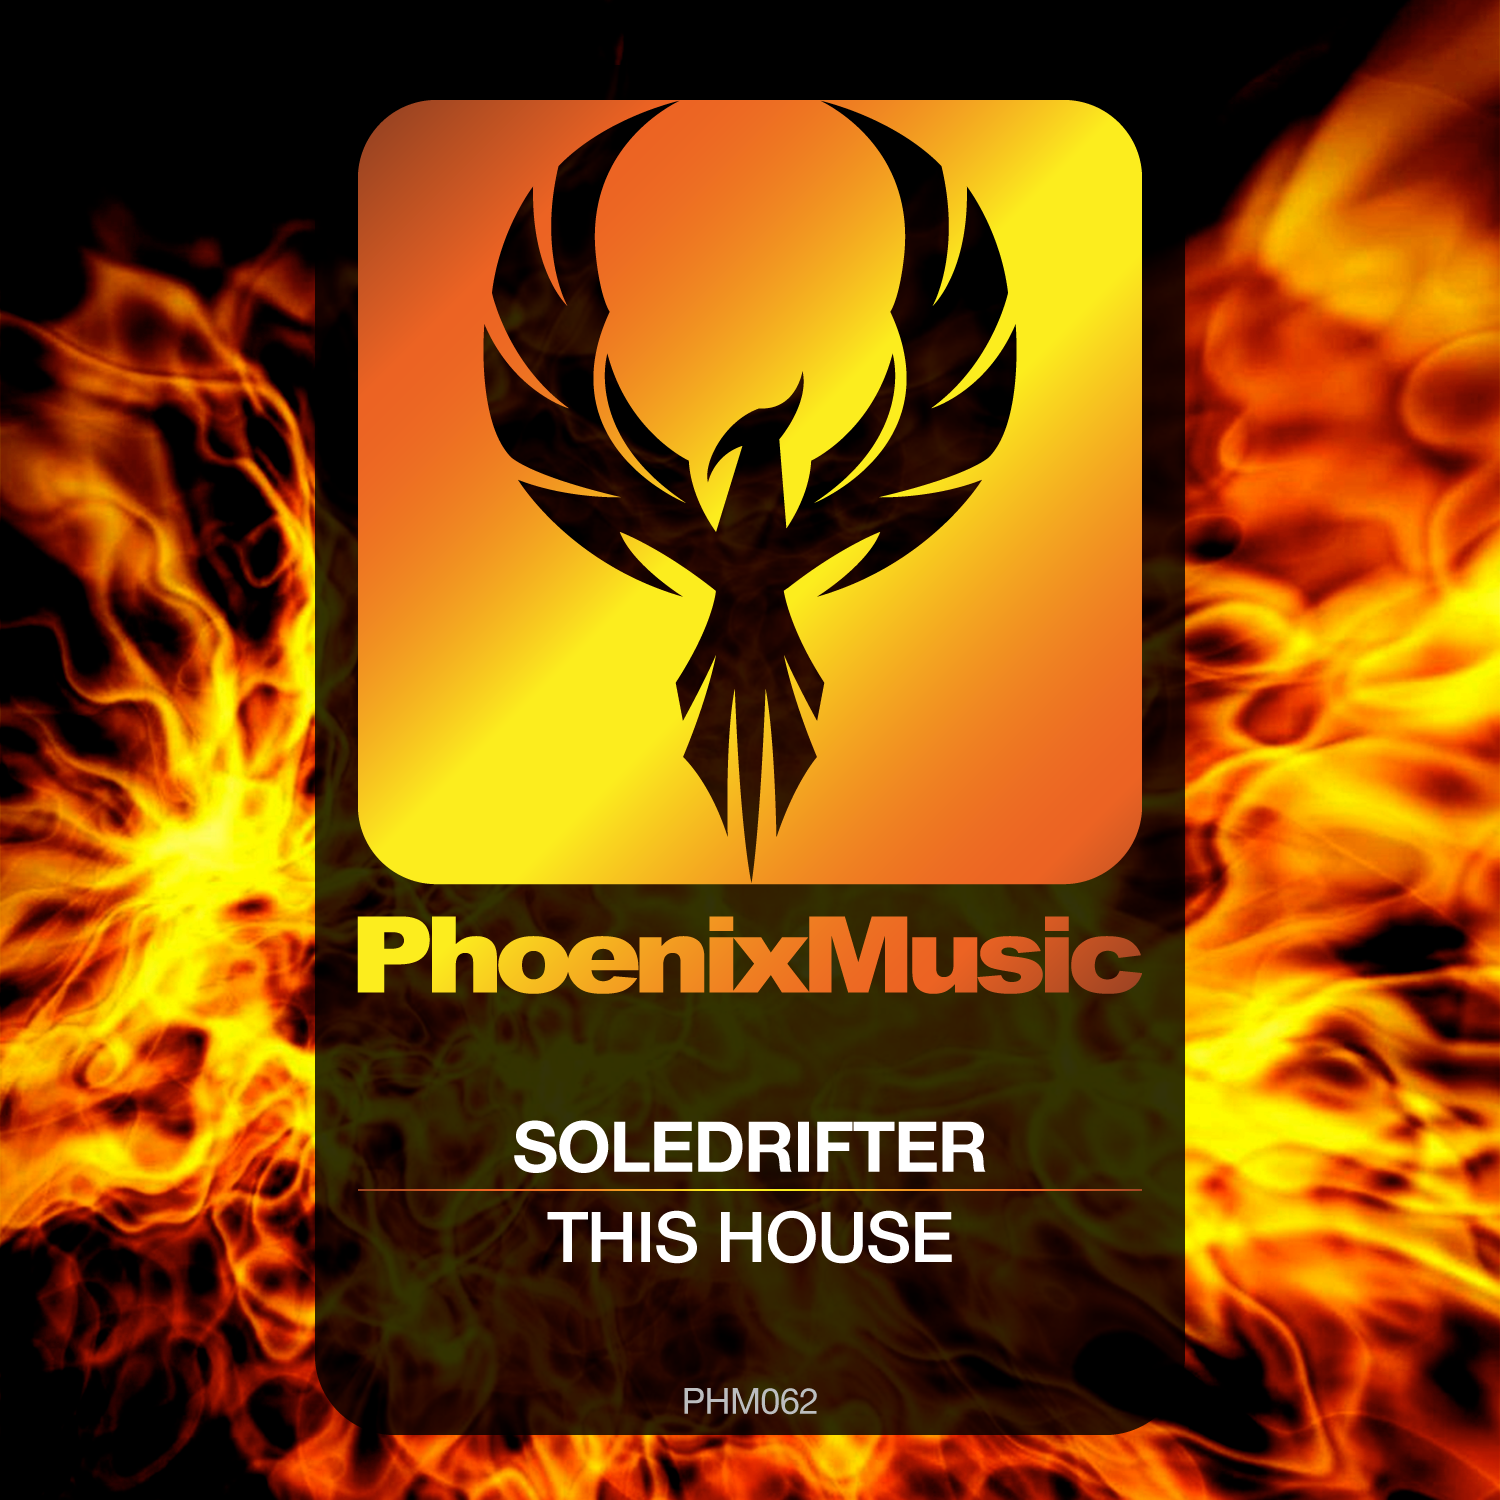 PHM062 Soledrifter - This House [Phoenix Music]